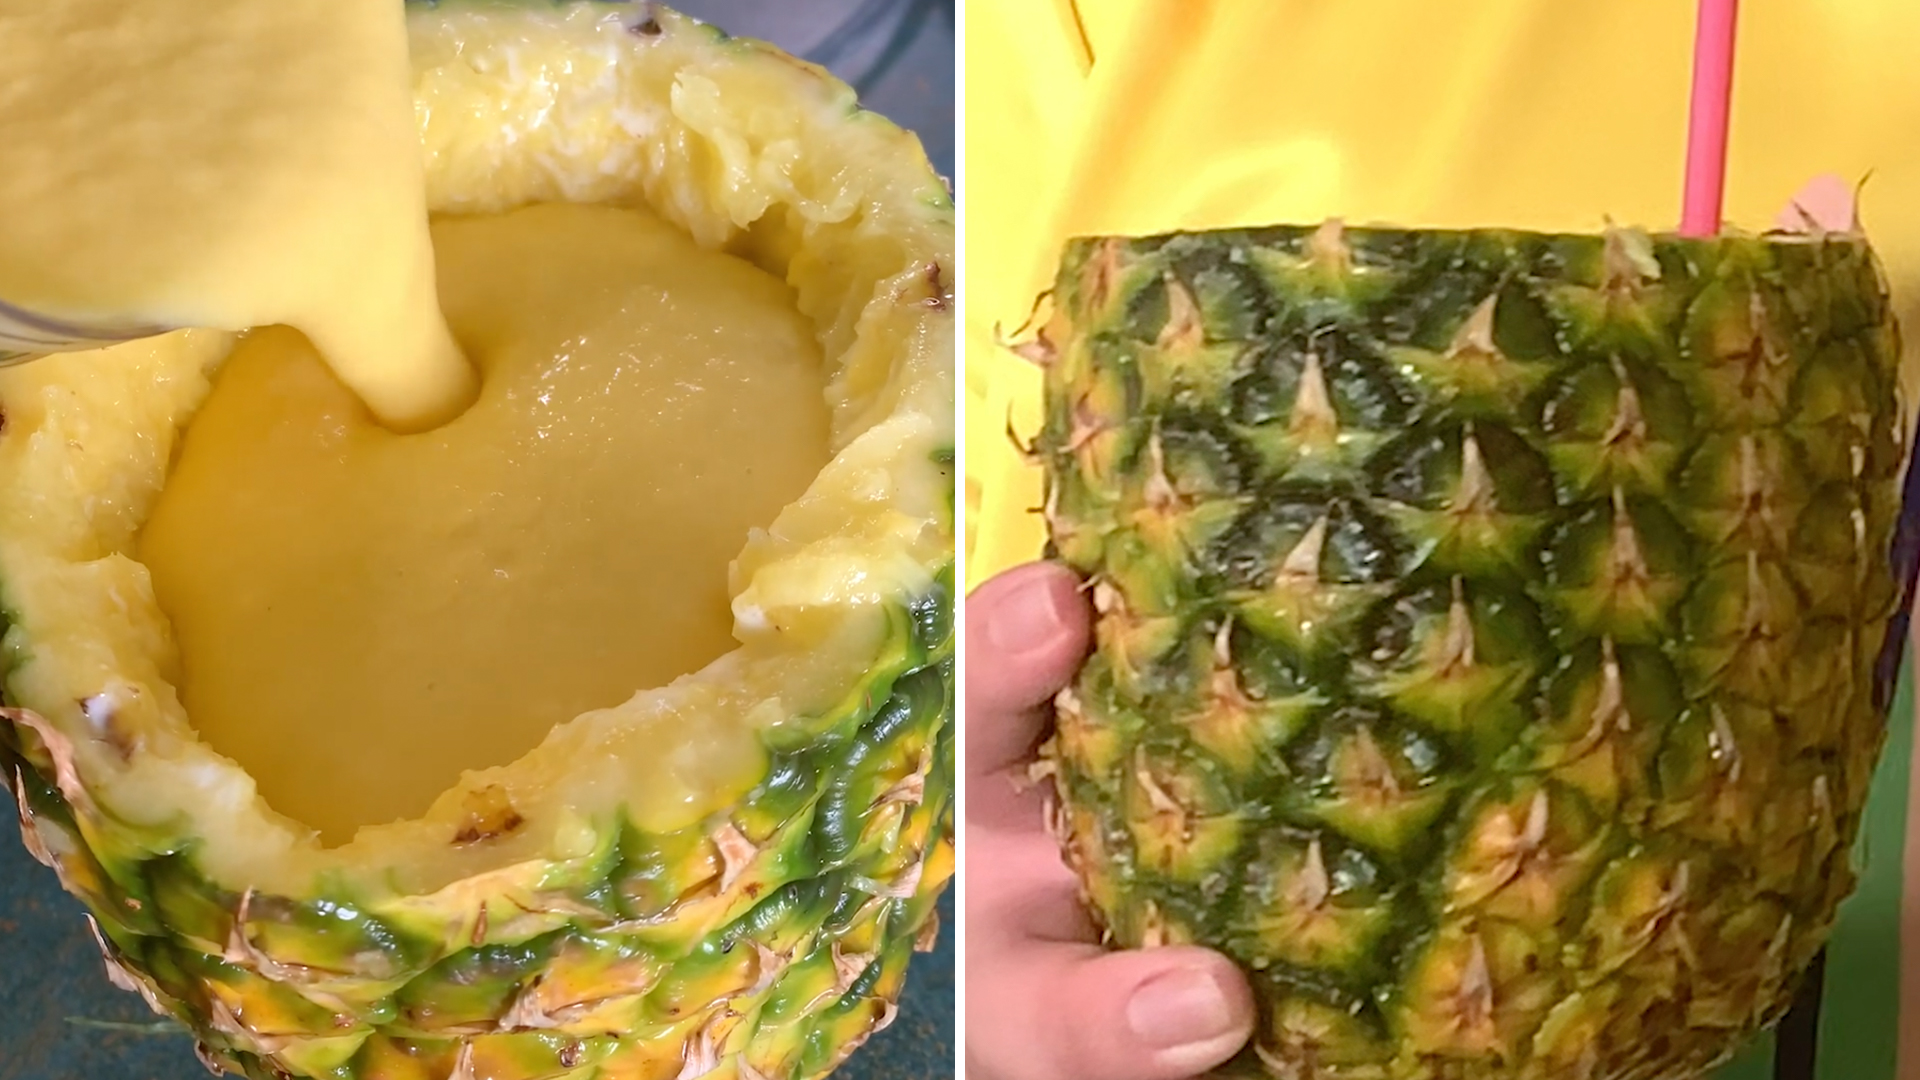 Spiked Pineapple Mango Smoothie Recipe